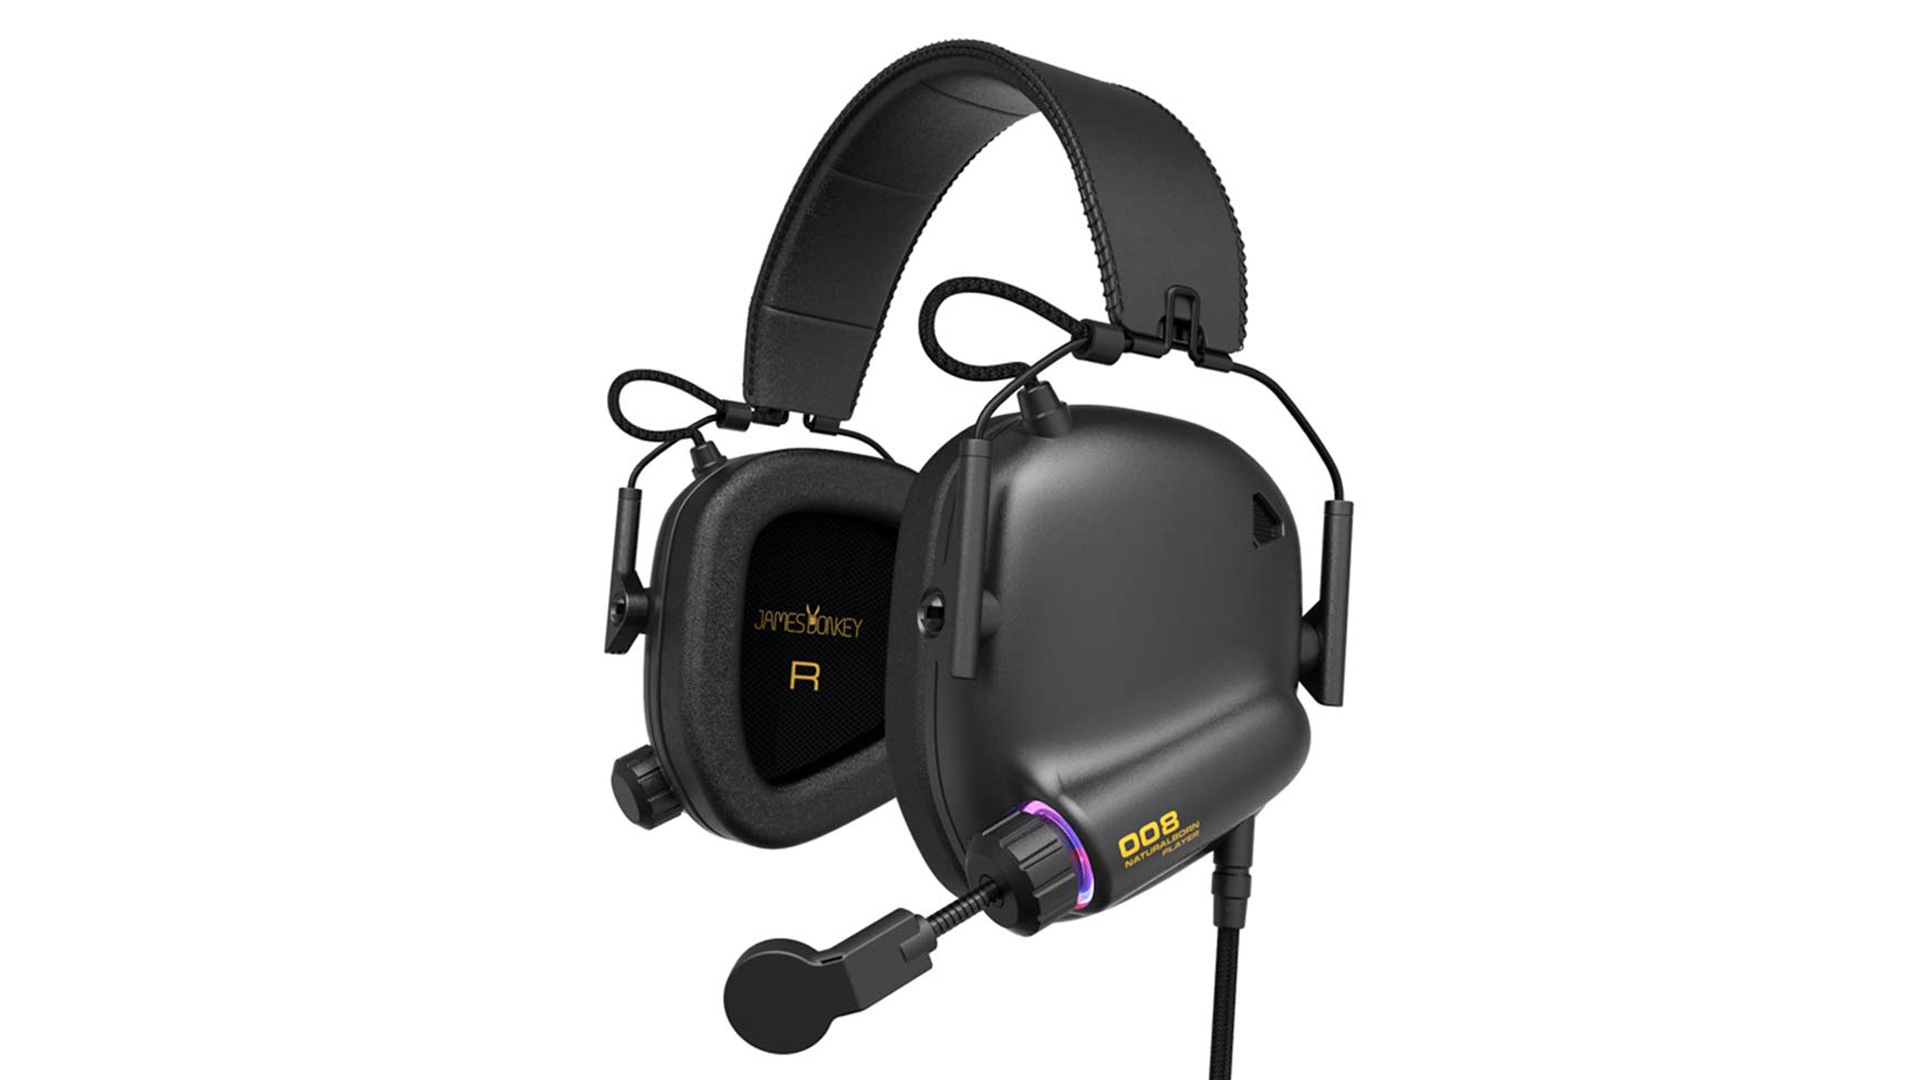 James Donkey 008 Tactical Master Gaming Headset